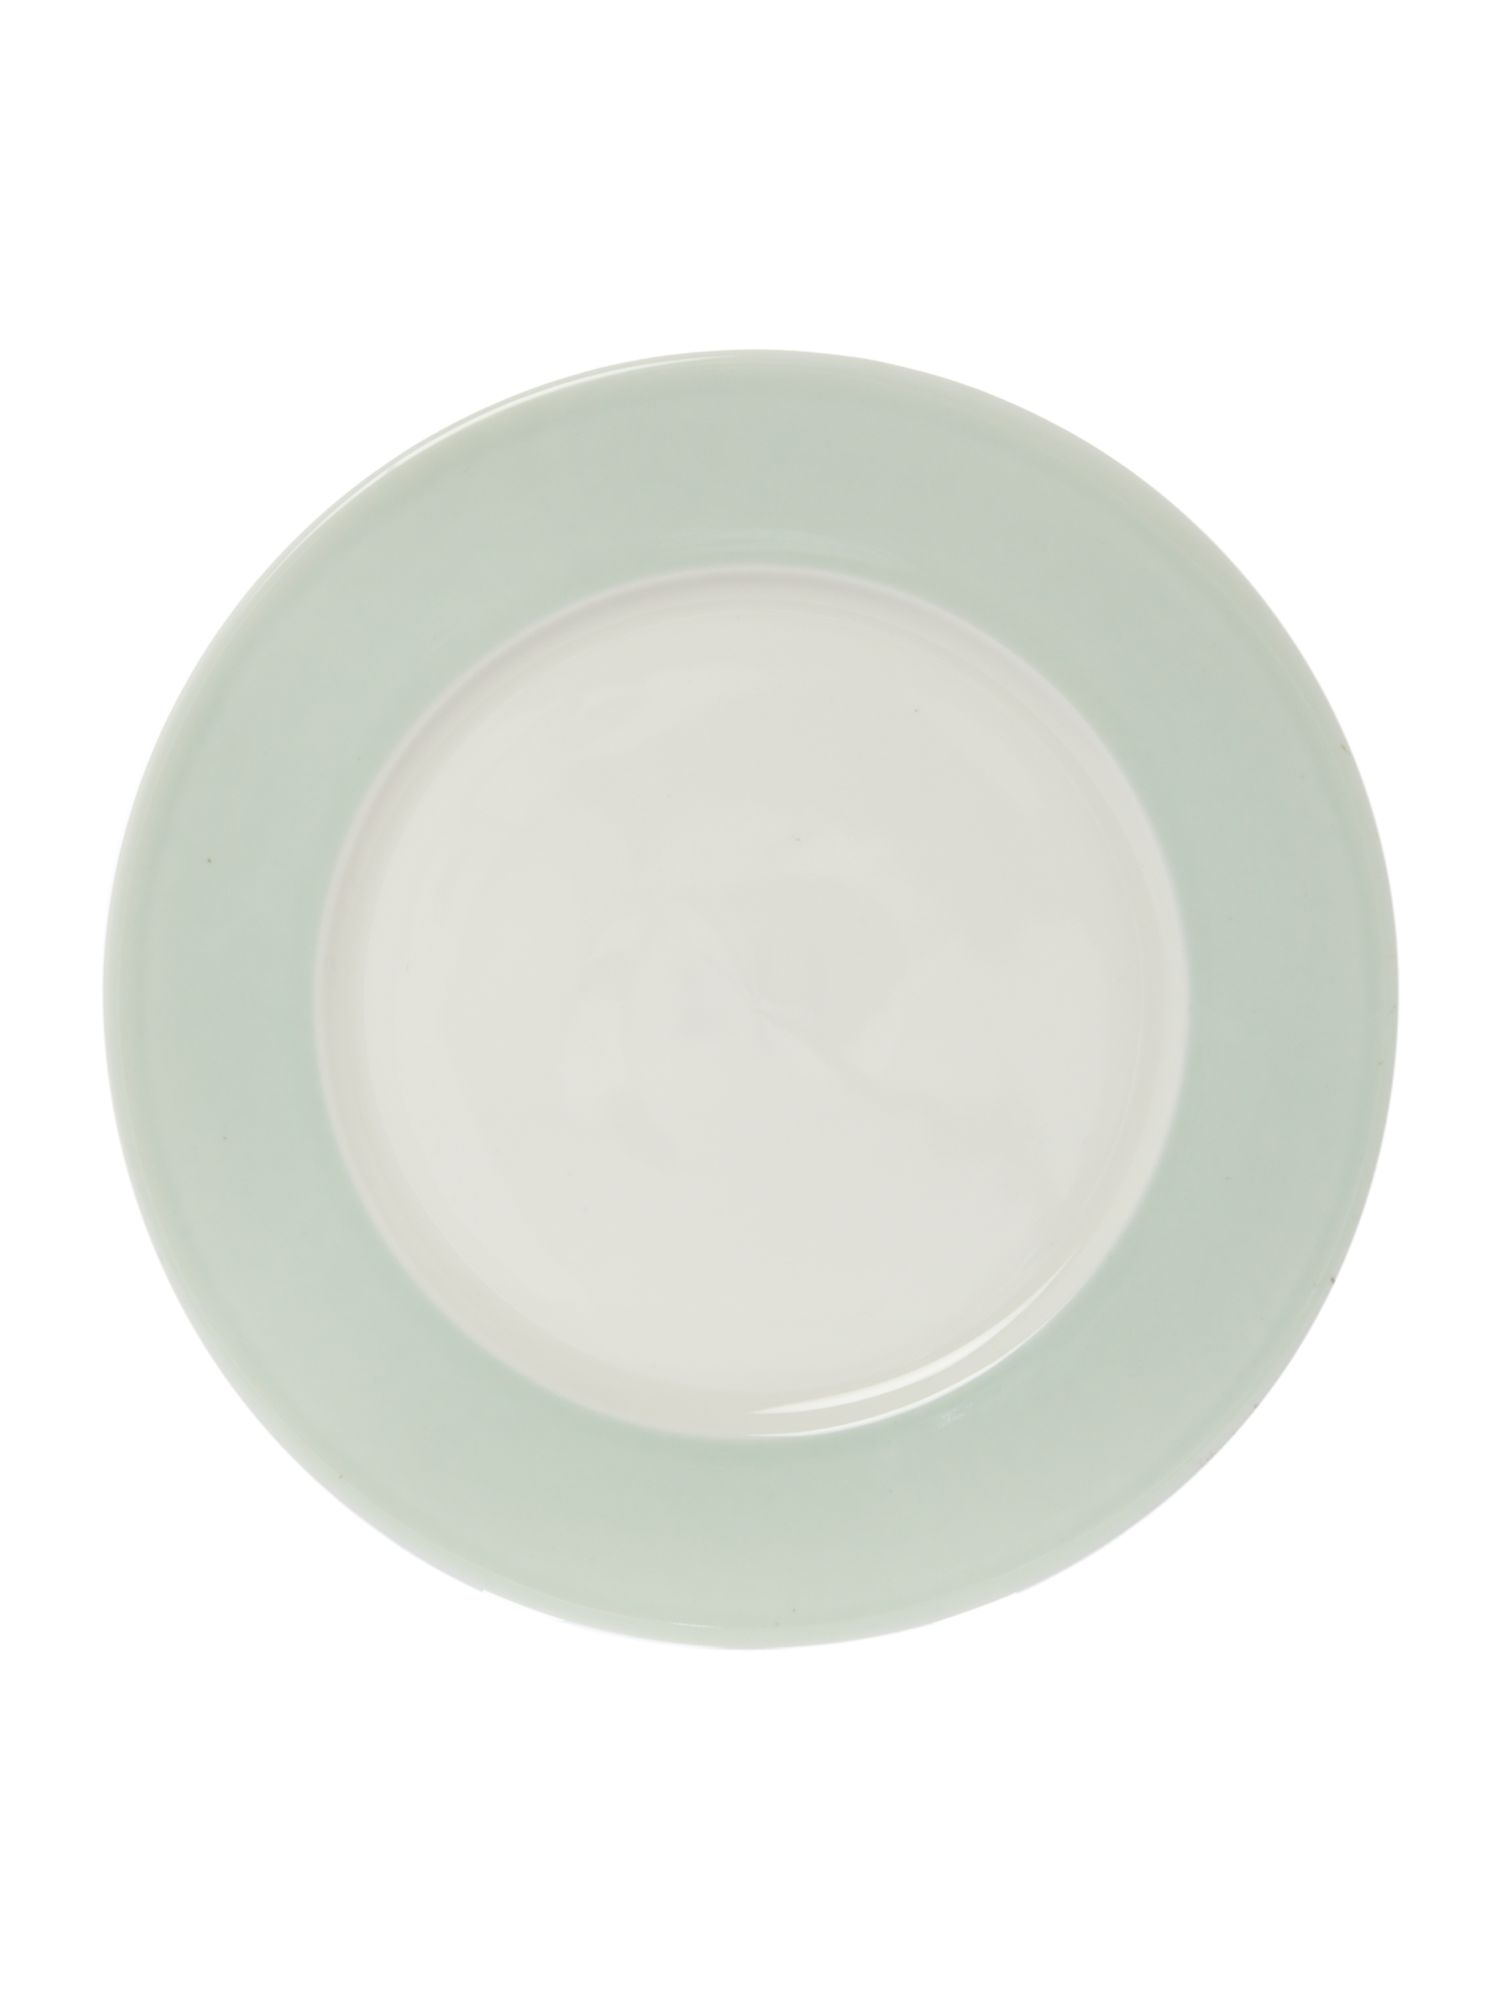 Simplicity sage side plate